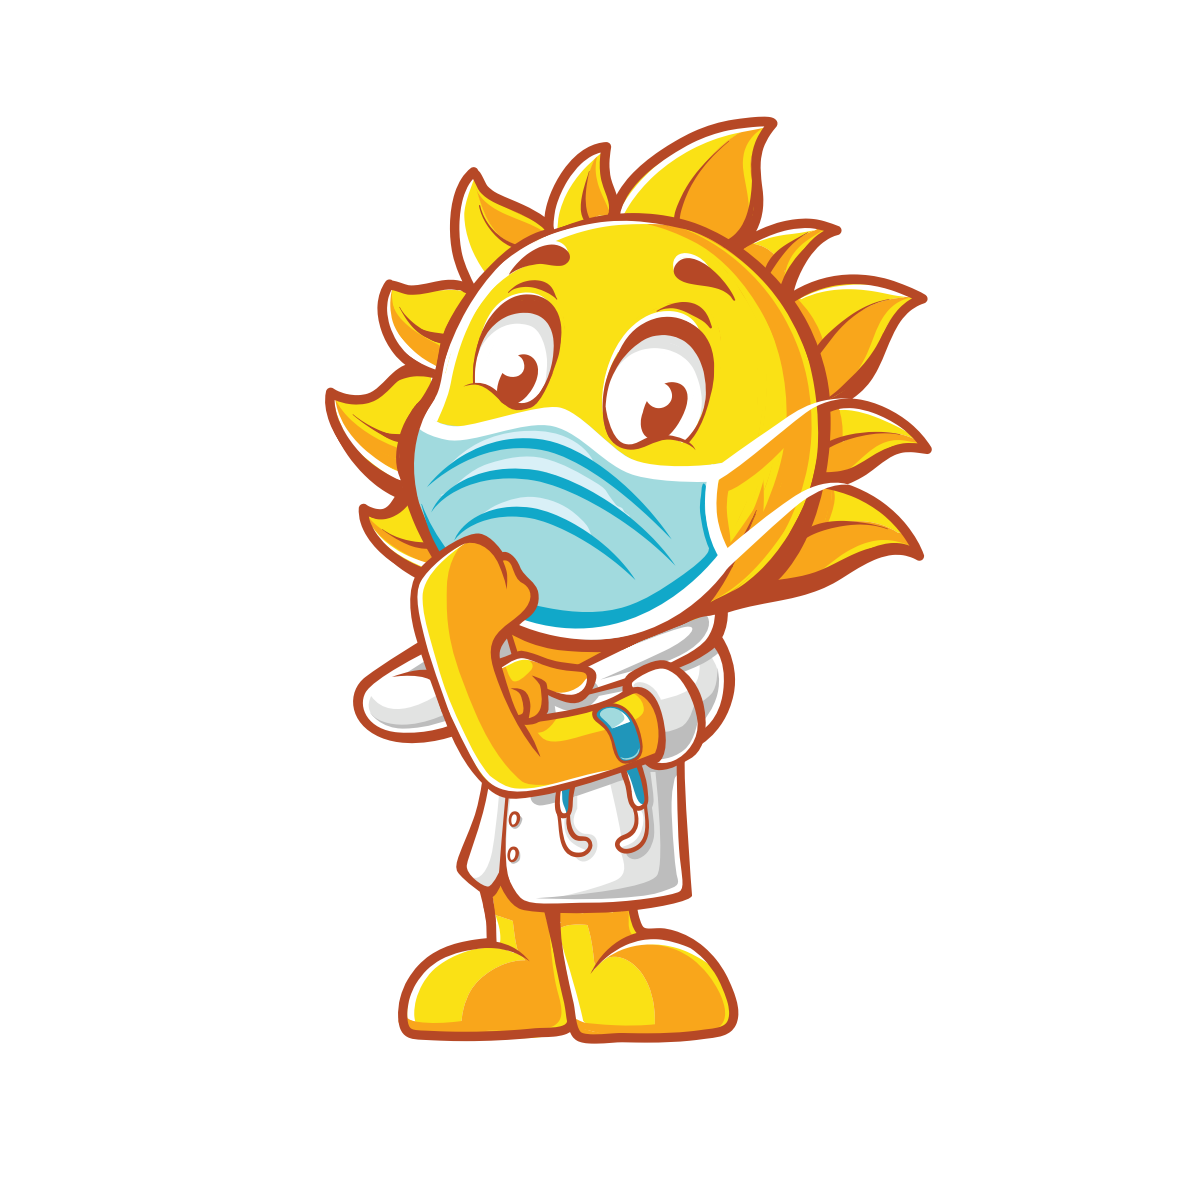 New pose for mascot (Dr. Sunny)